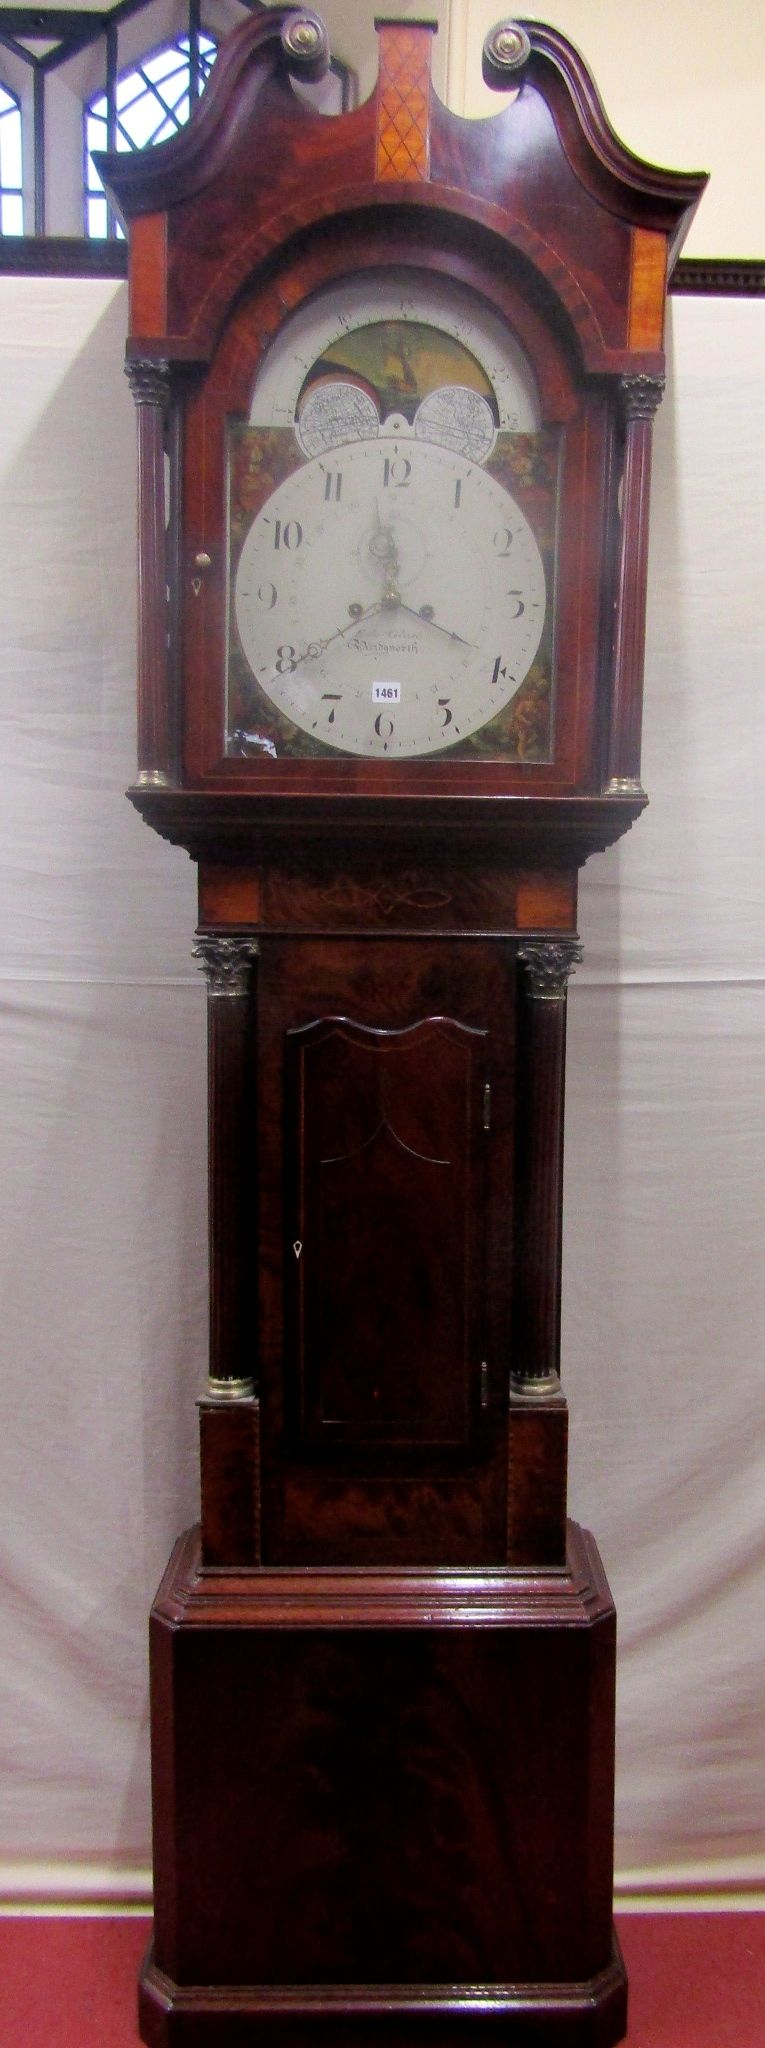 Lot 1461 - A Regency mahogany longcase clock with well figured flame veneers, the trunk with corinthian